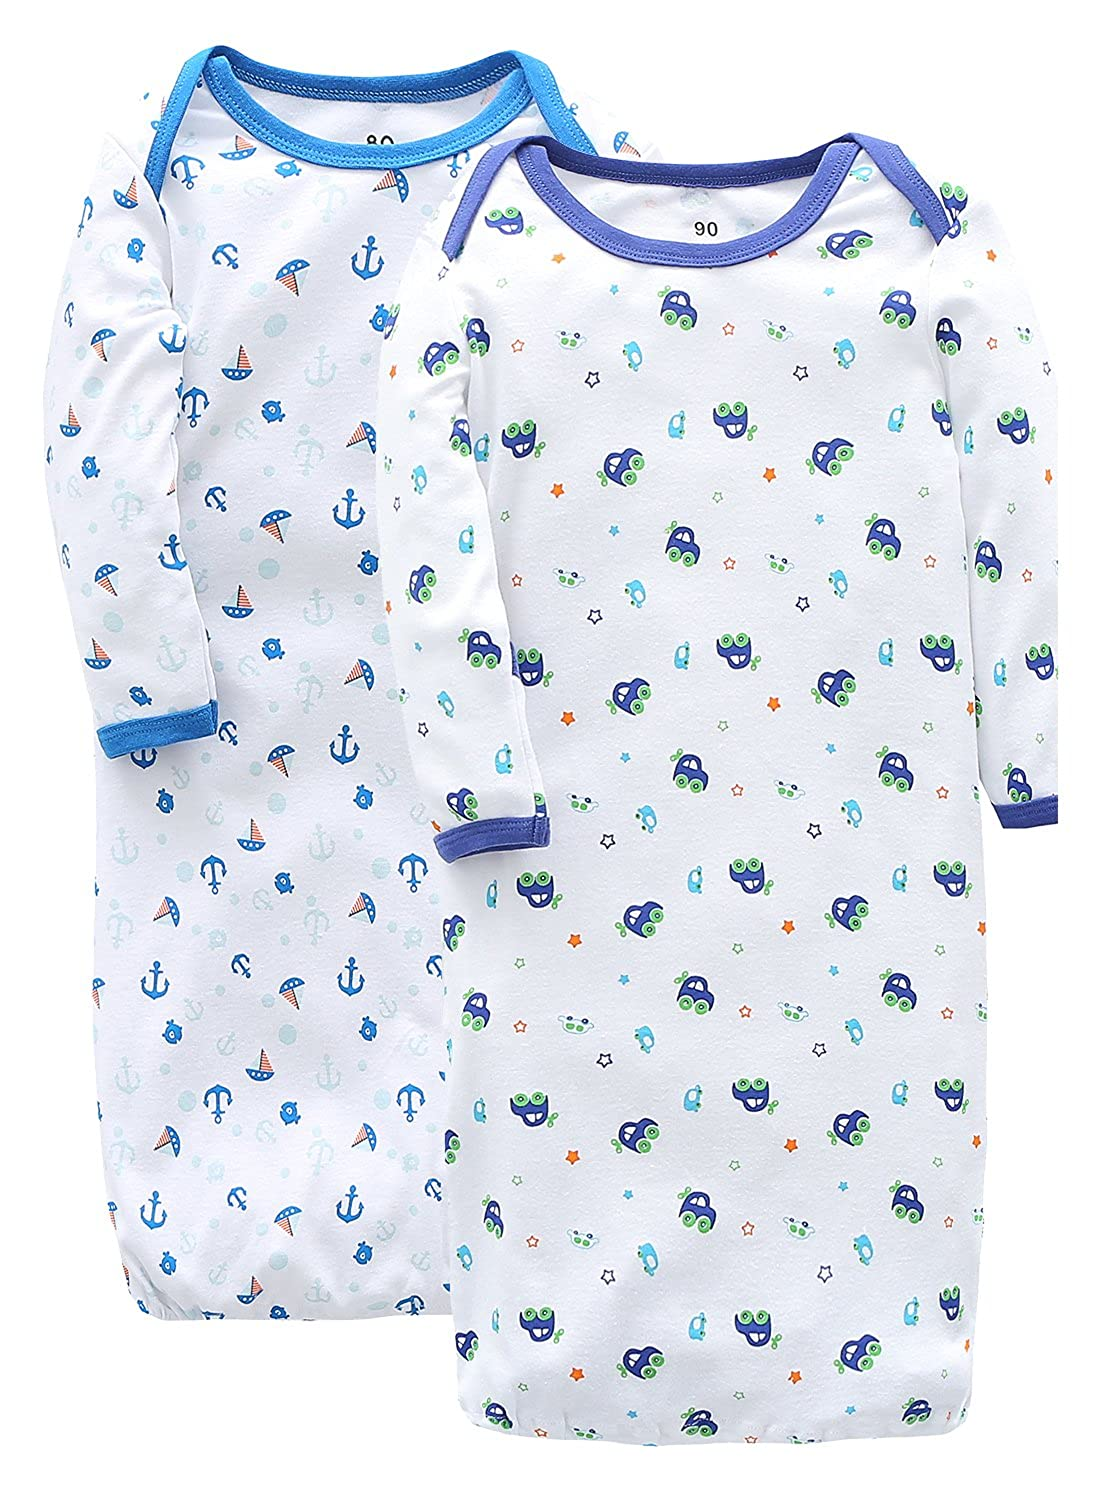 MARQUEBABY Car & Boat Baby Gown - Cotton Soft Envelope Collar Mittens Sleeper 90